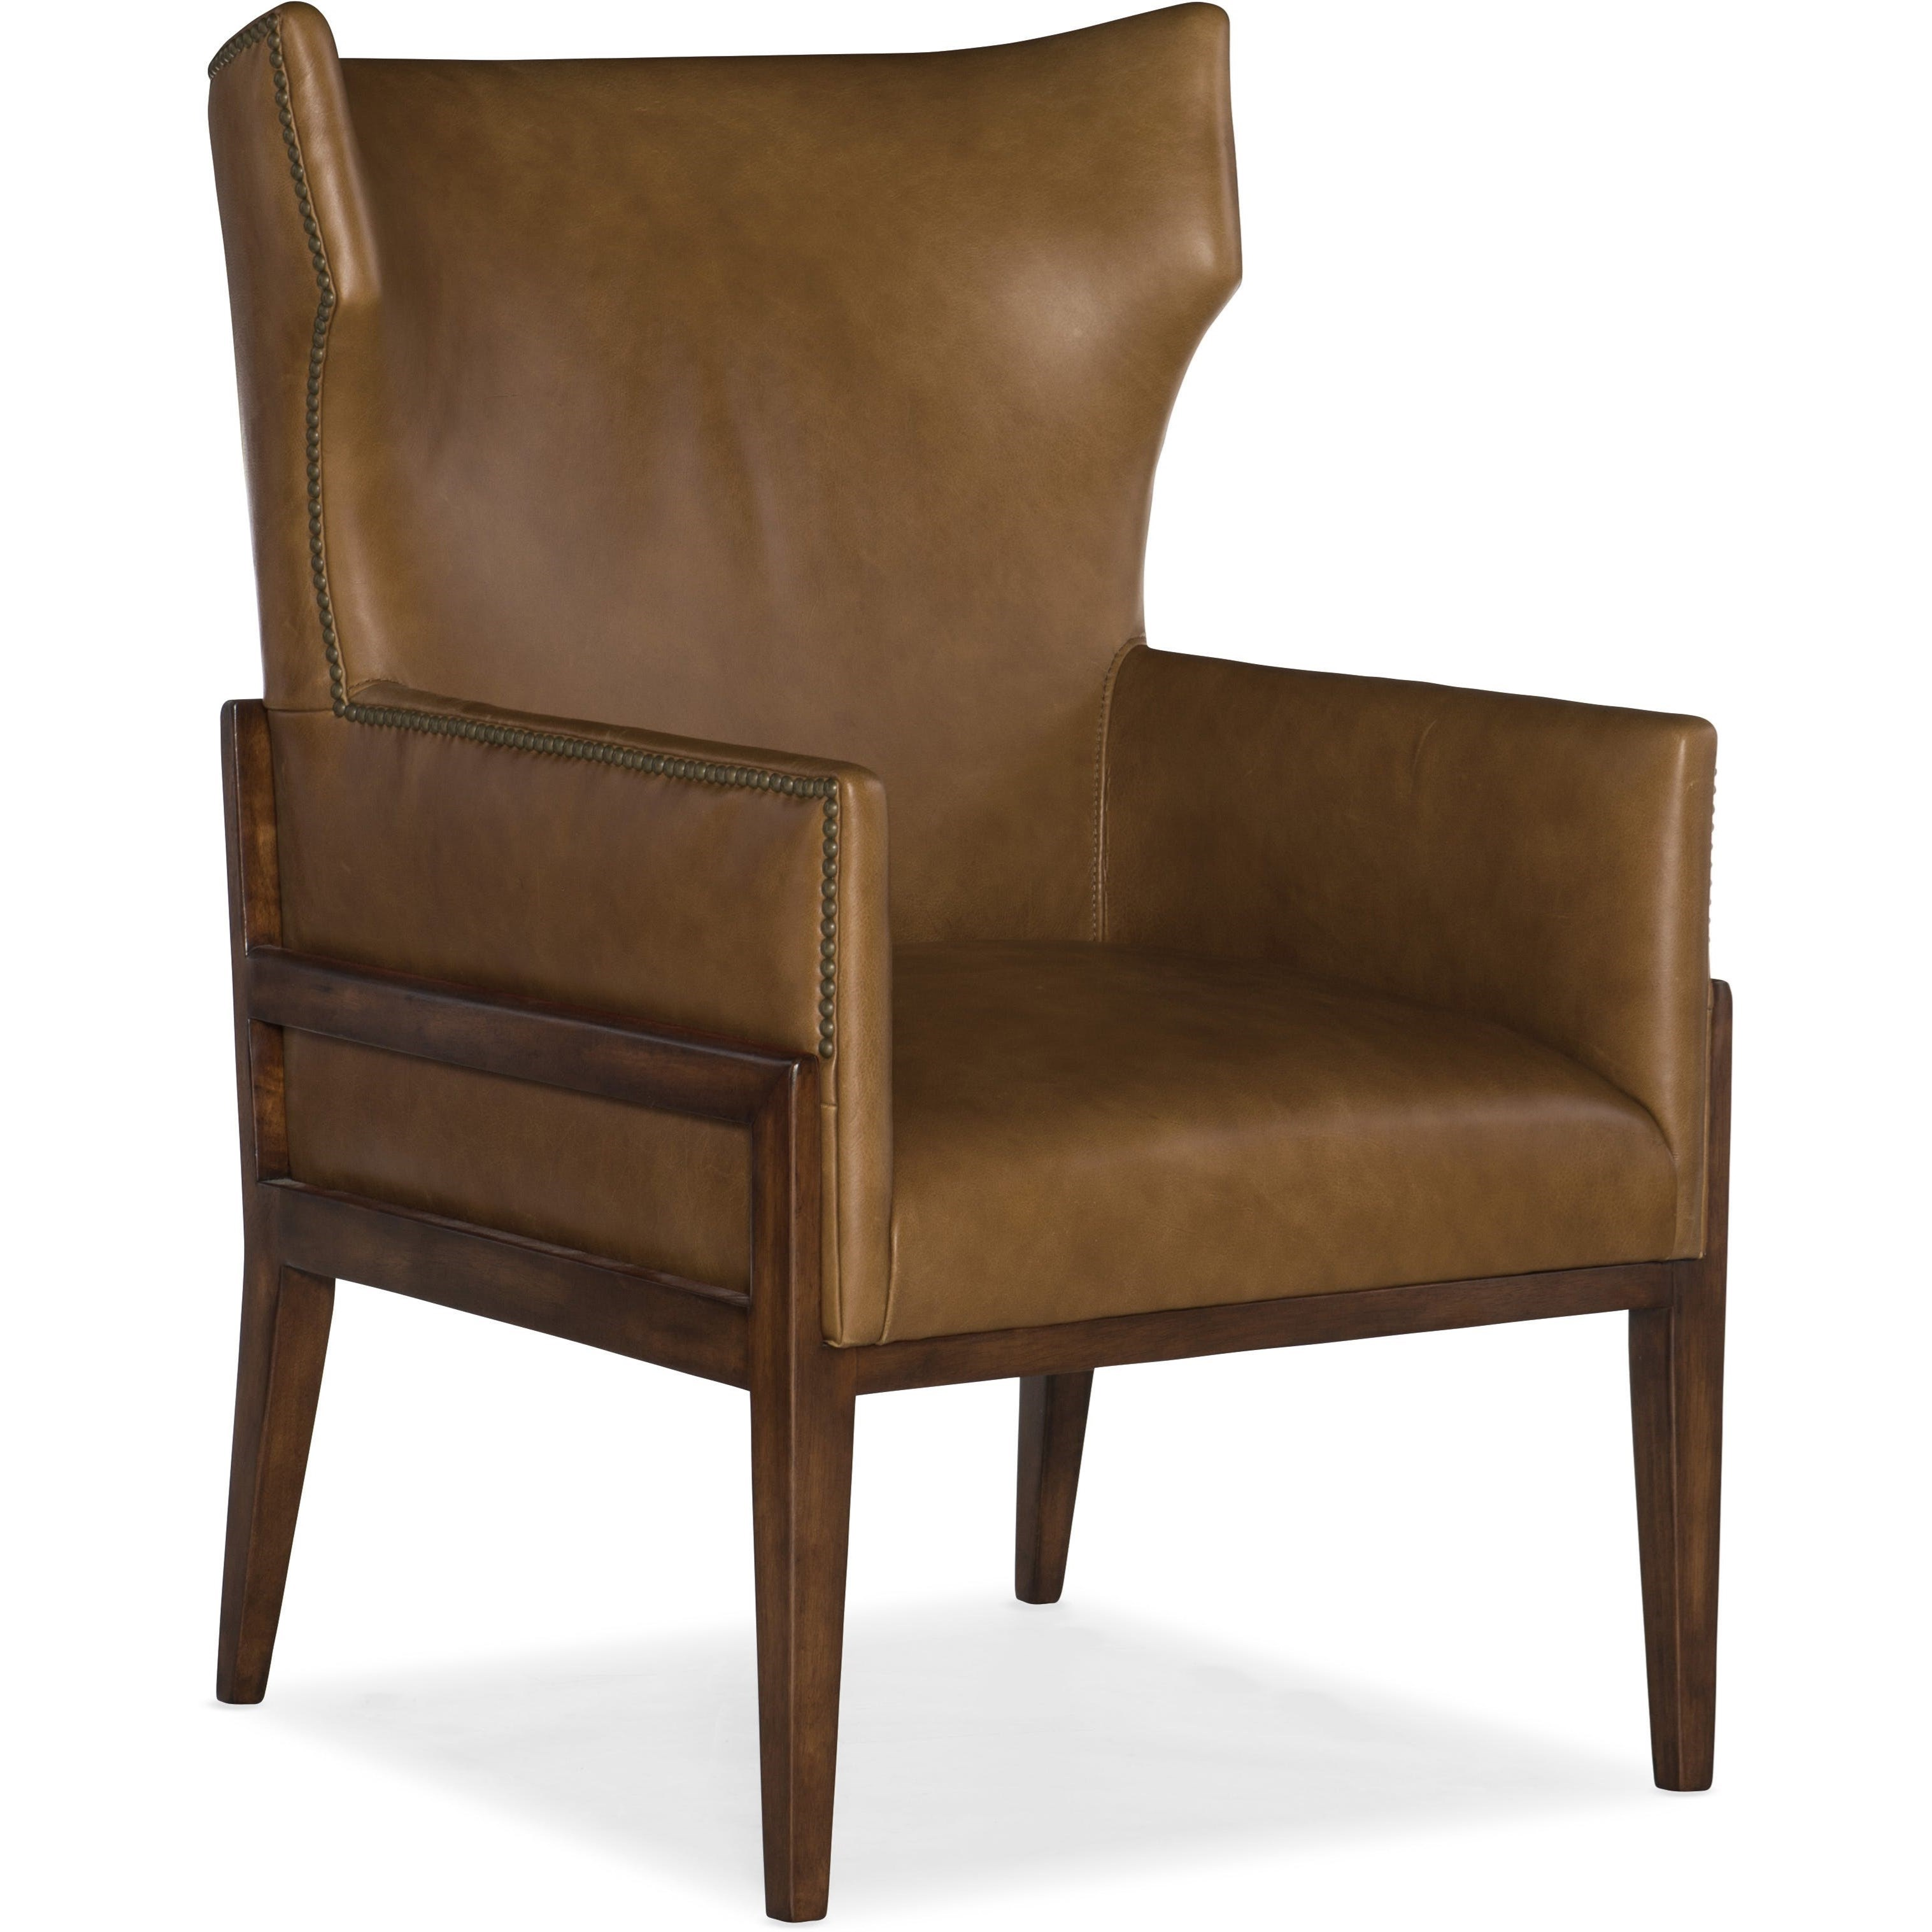 Club Chairs Burrell Leather Accent Chair at Williams & Kay